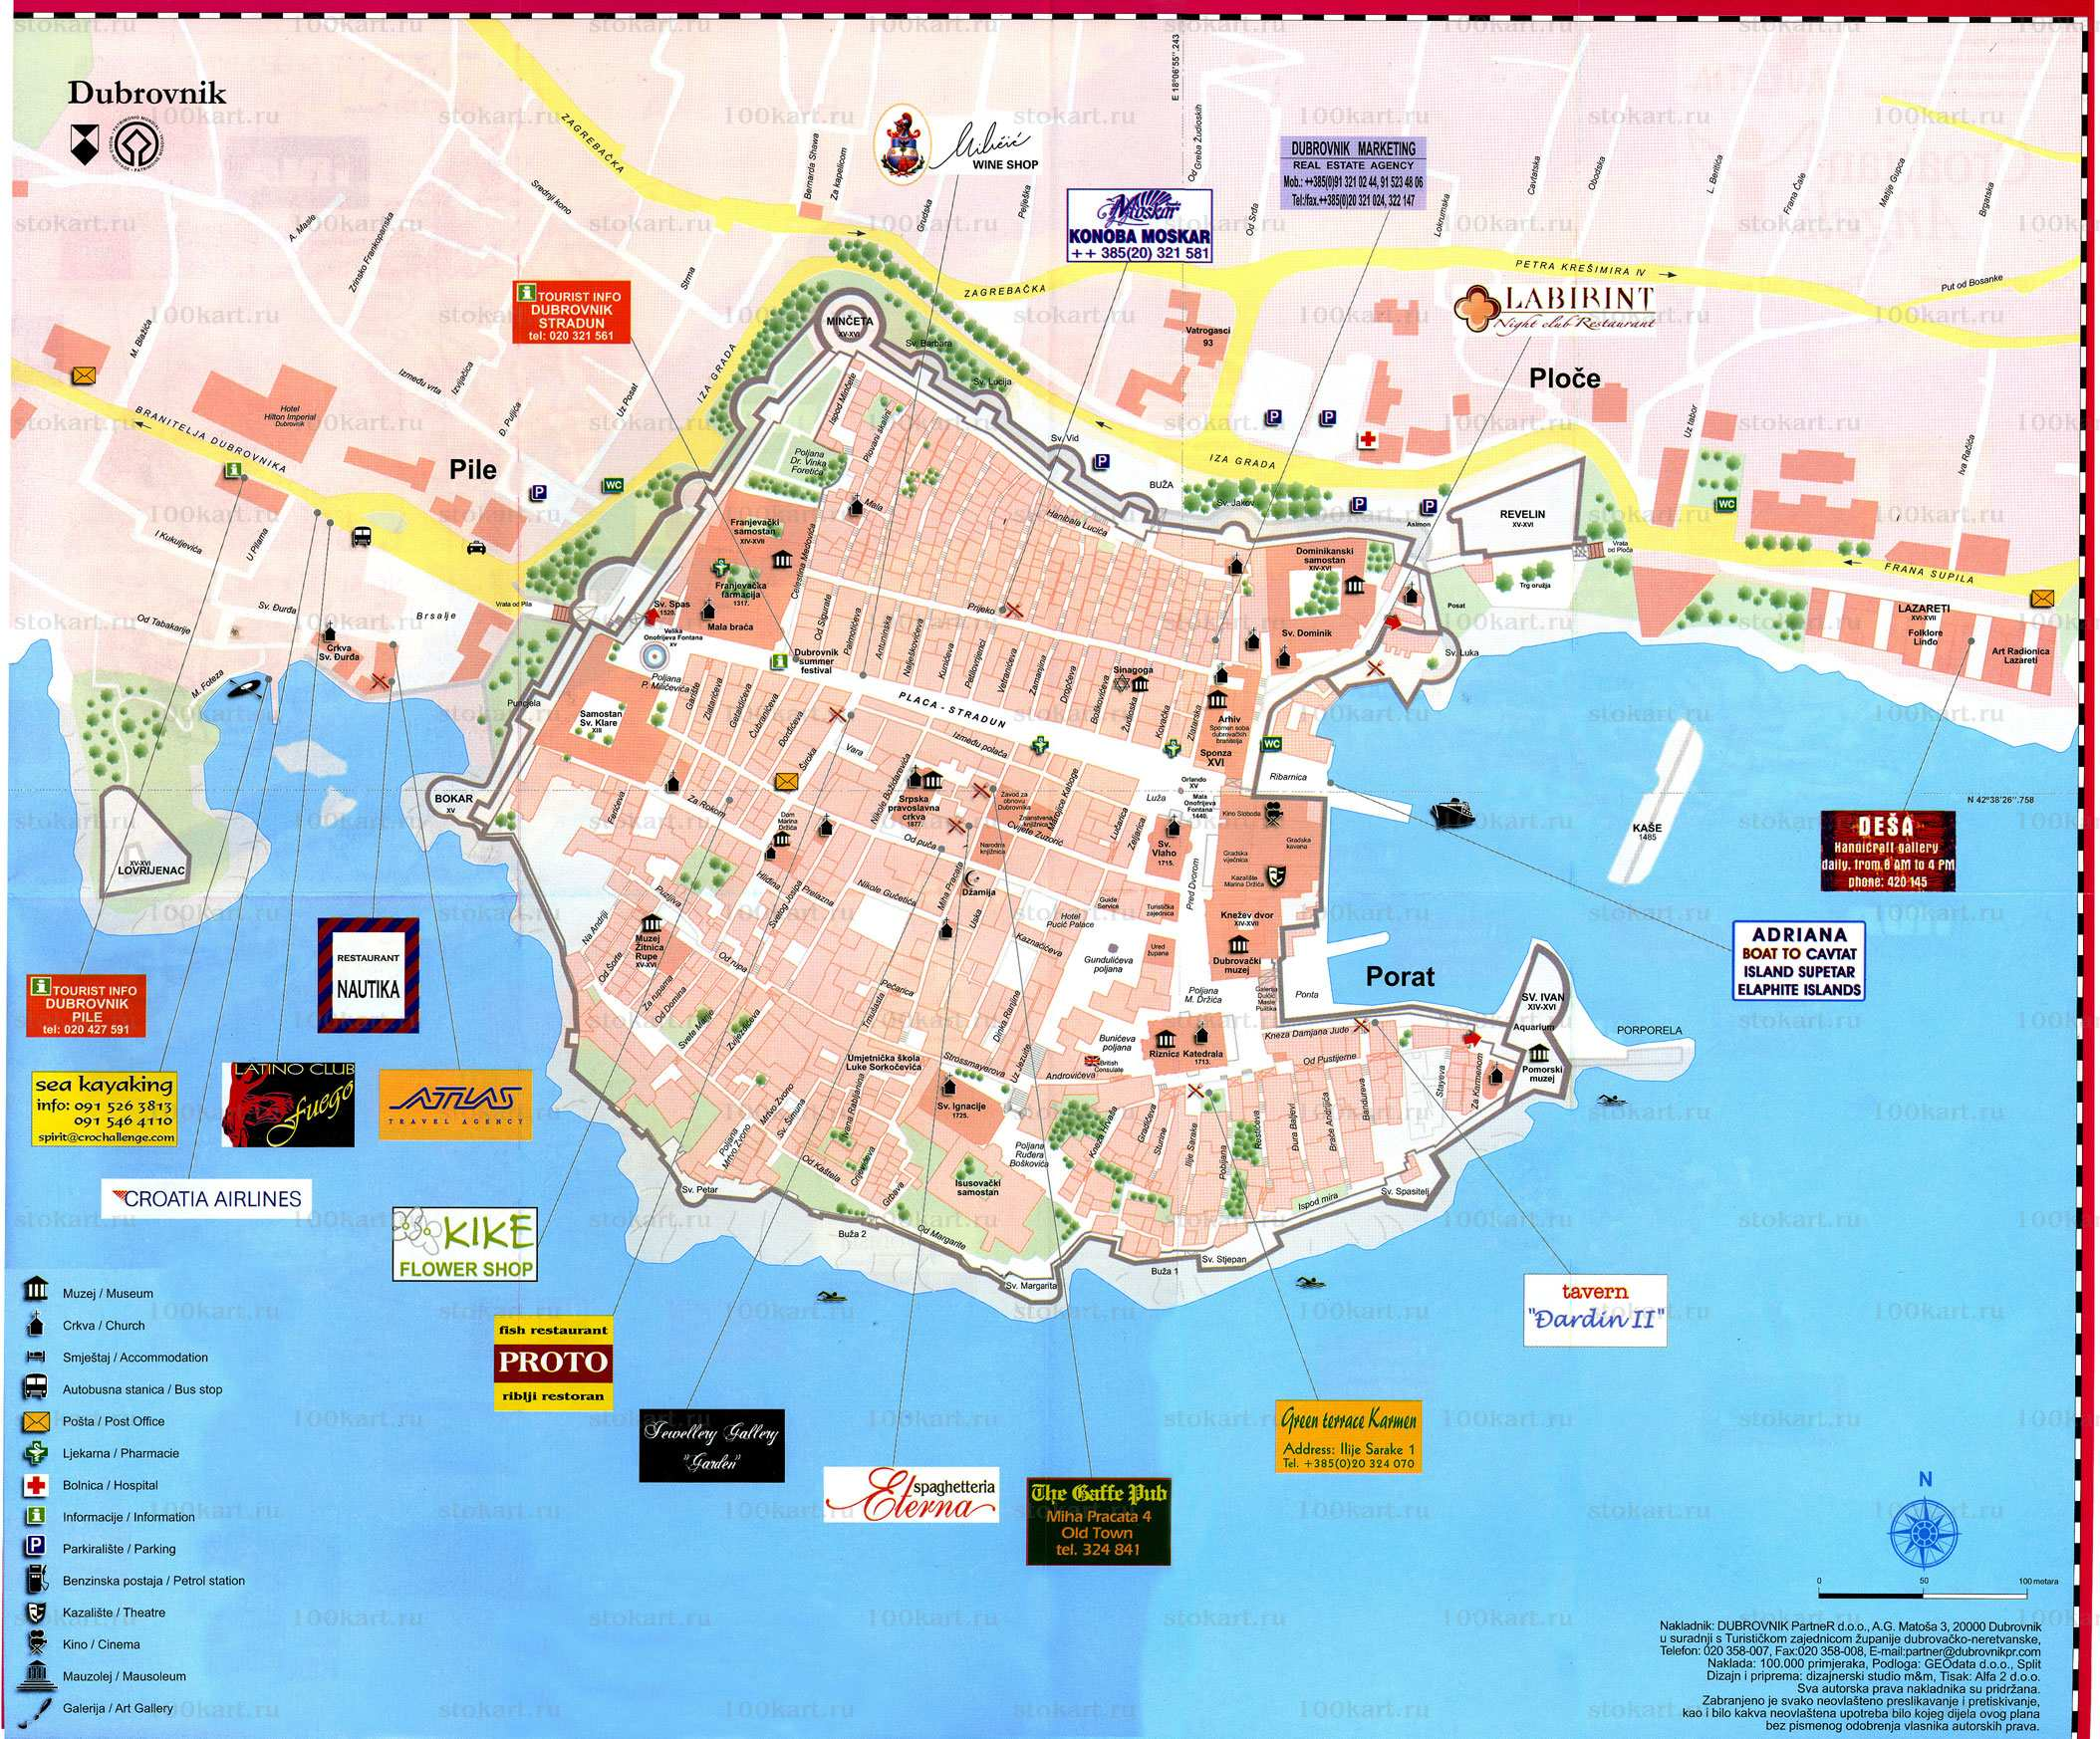 Map Of Dubrovnik Large Dubrovnik Maps for Free Download and Print | High Resolution